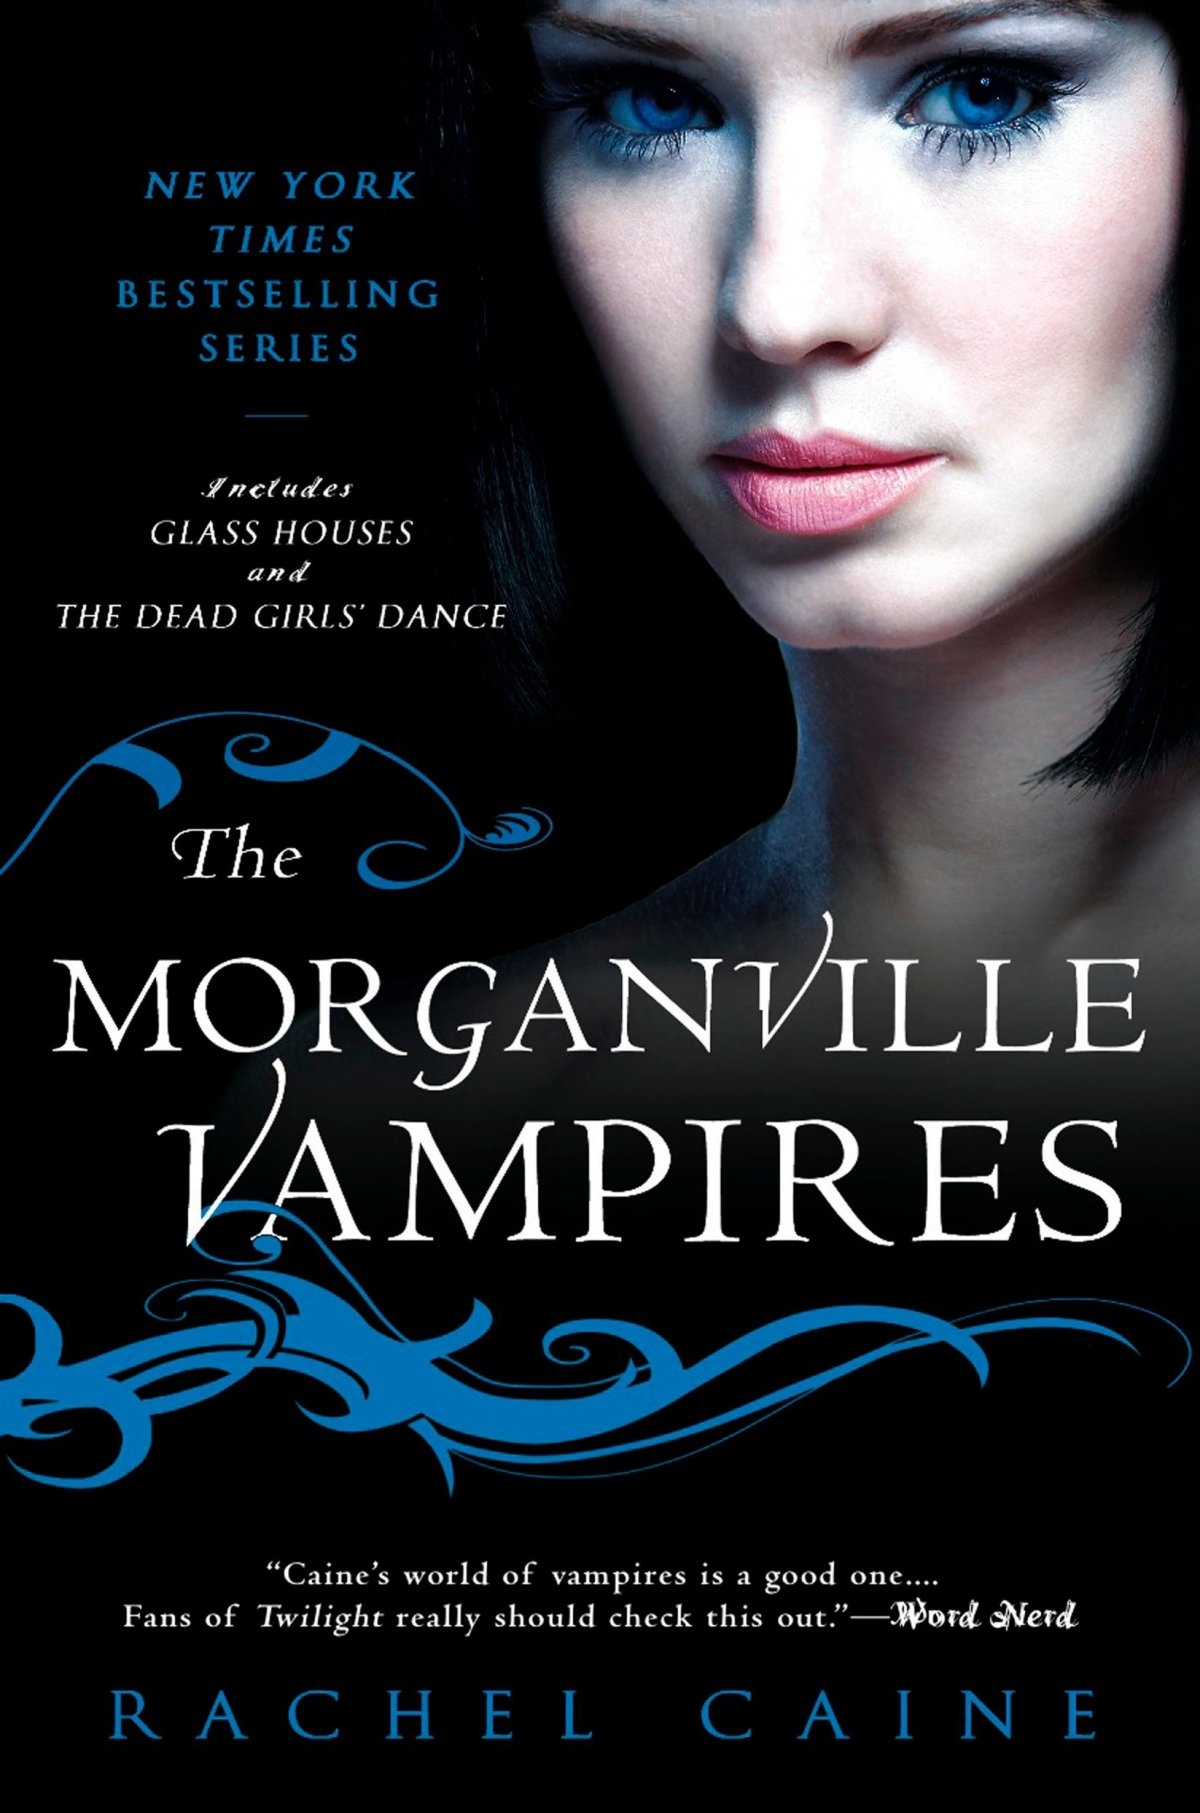 Morganville Vampires book 1 and 2 book cover.